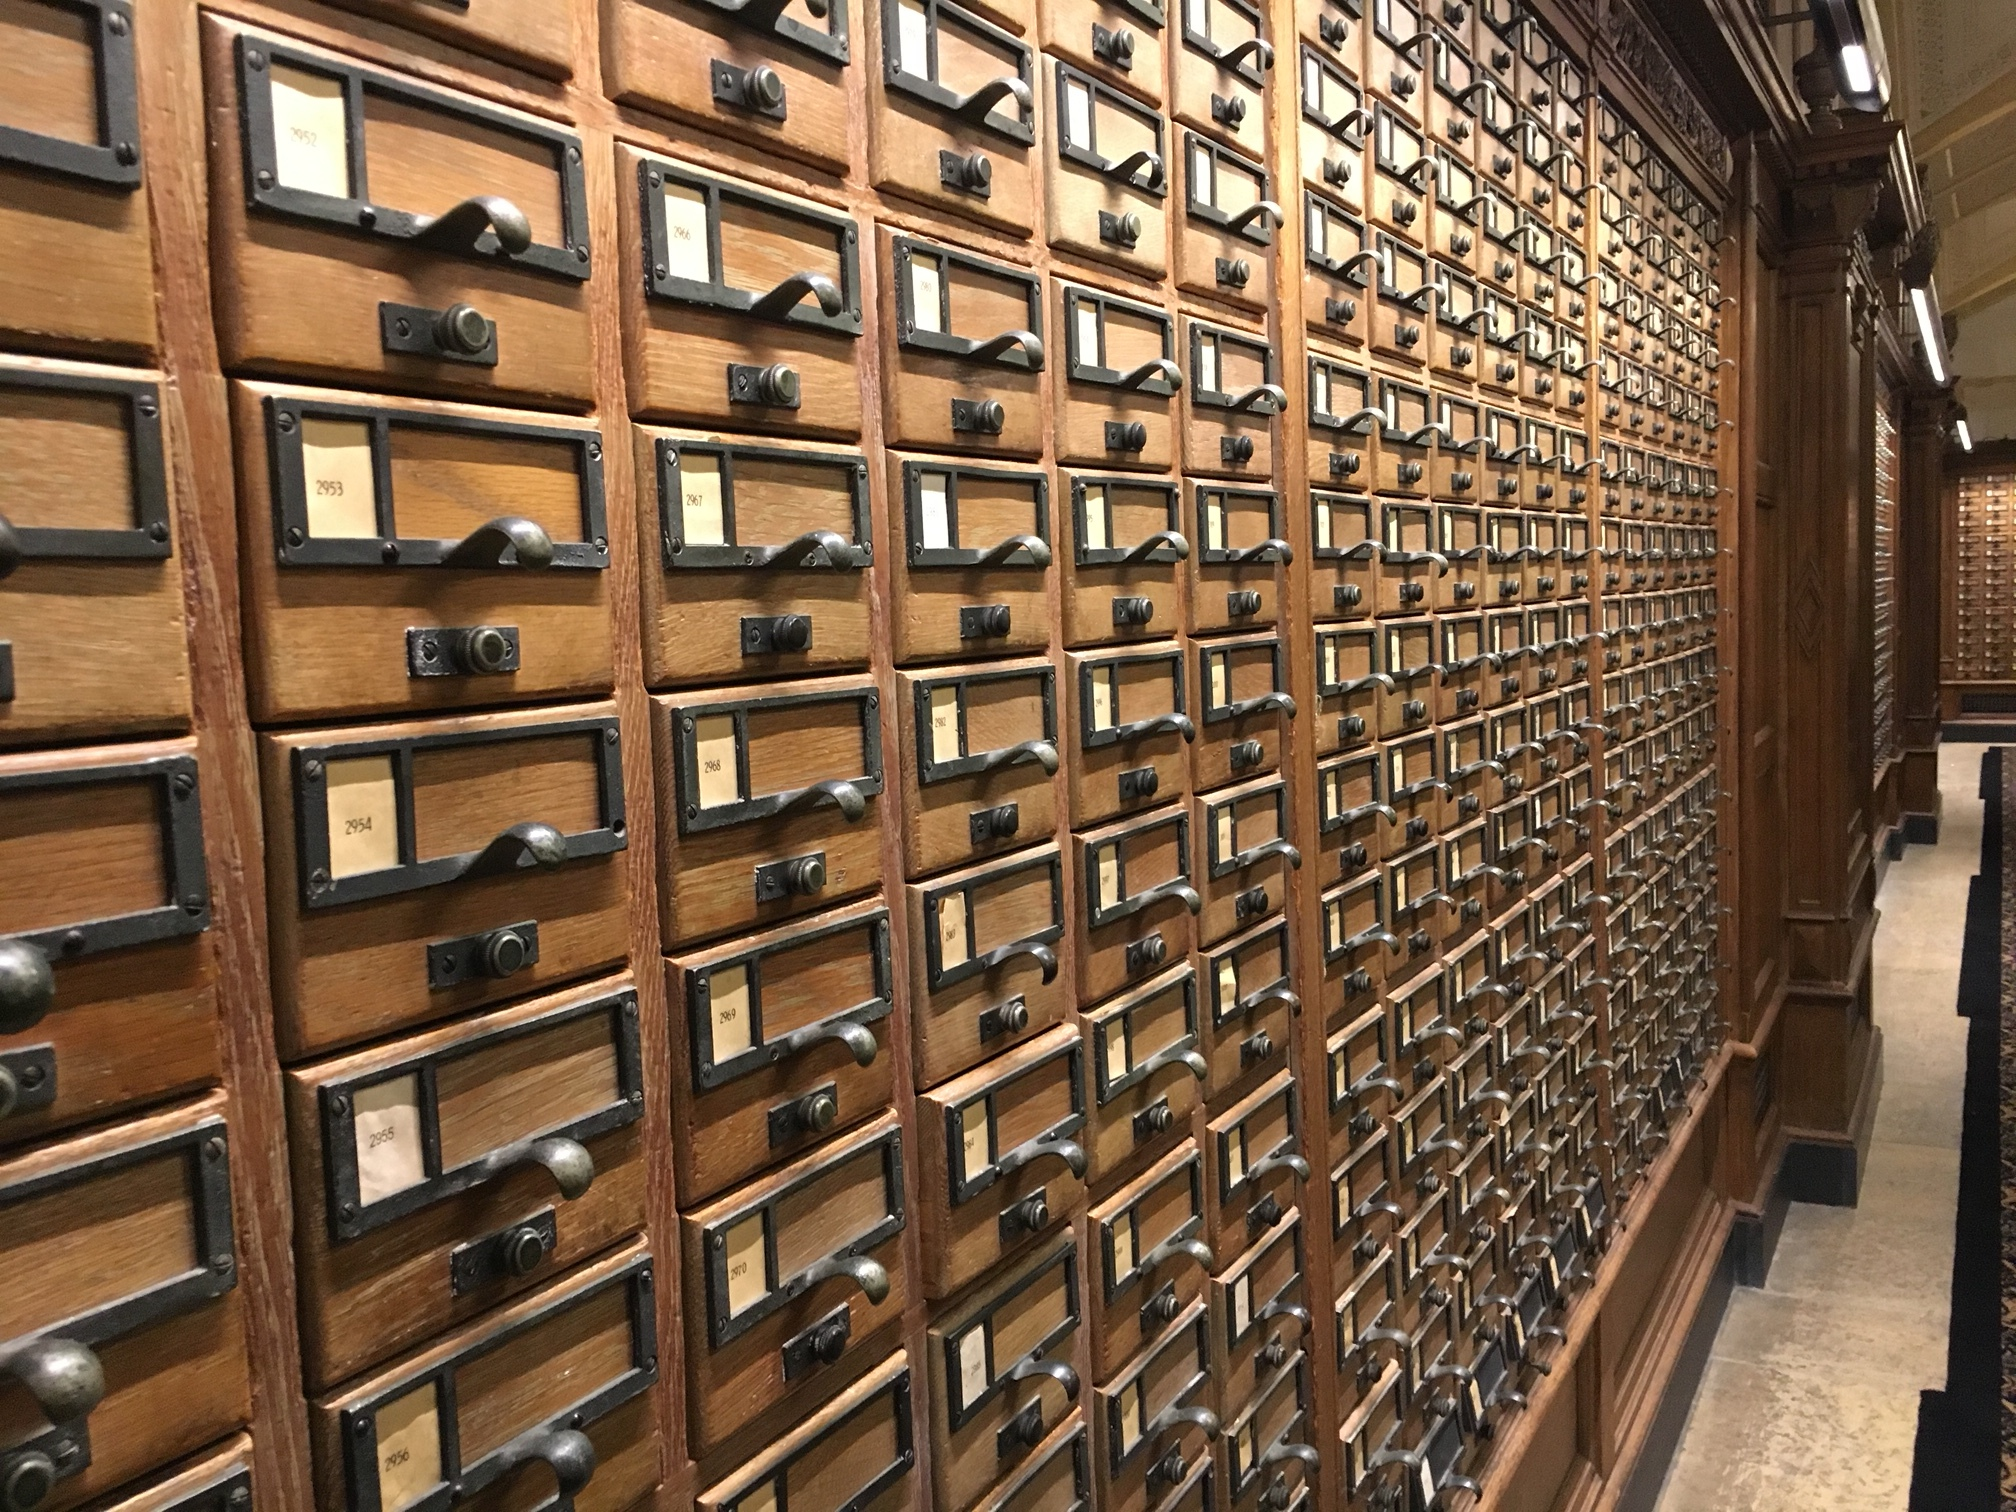 We visited Yale's  Sterling Memorial Library  in March. Wals and walls of catalog drawers - oh my....